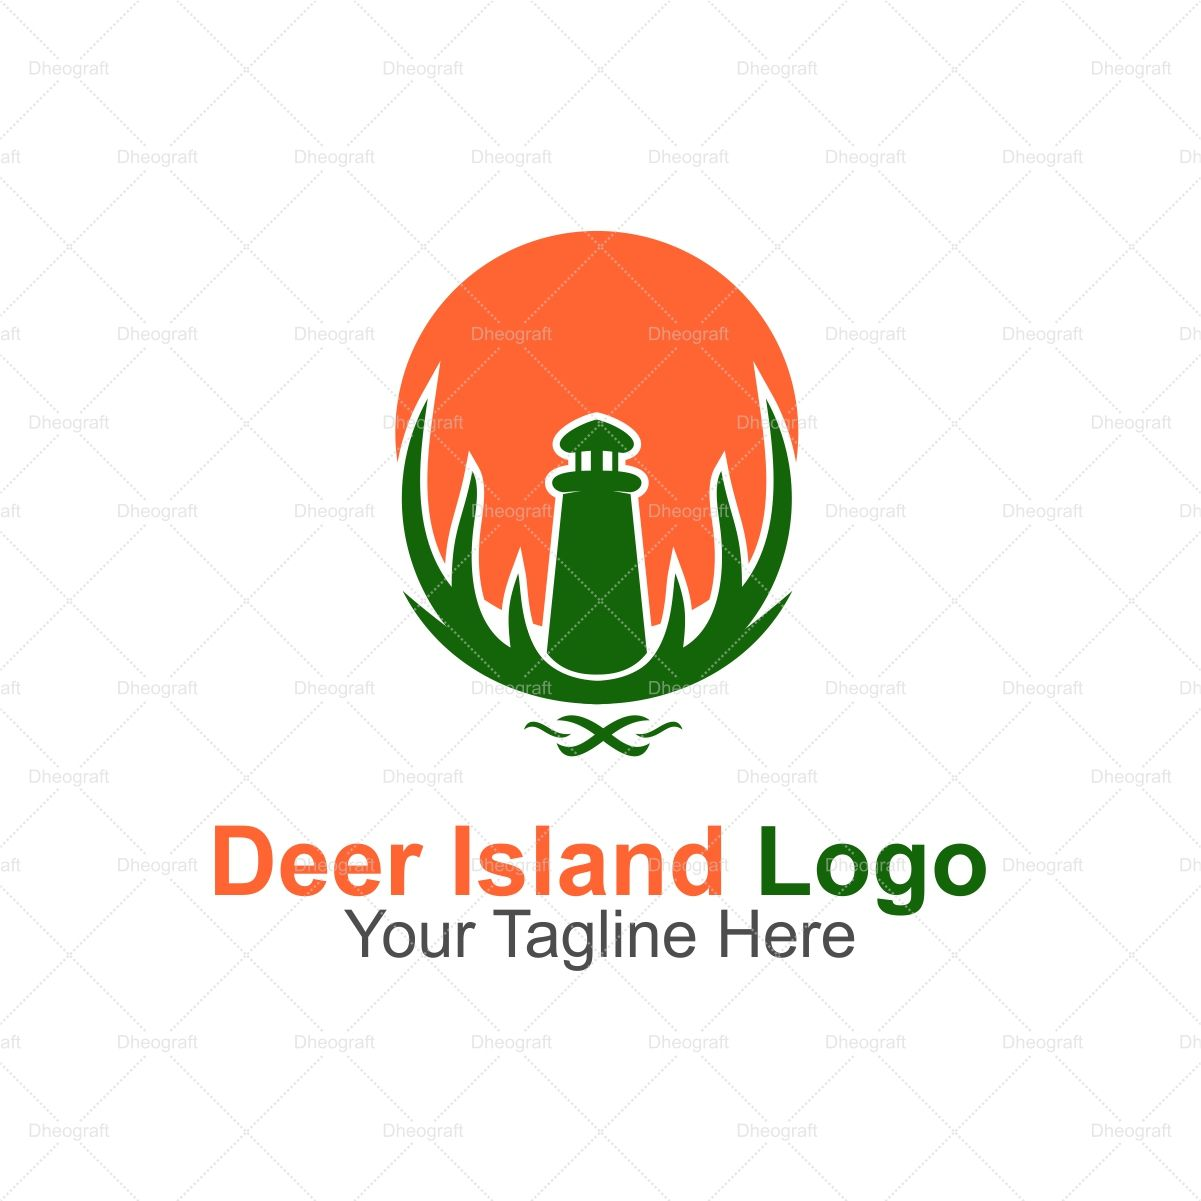 Deer Island Logo Screenshot 1